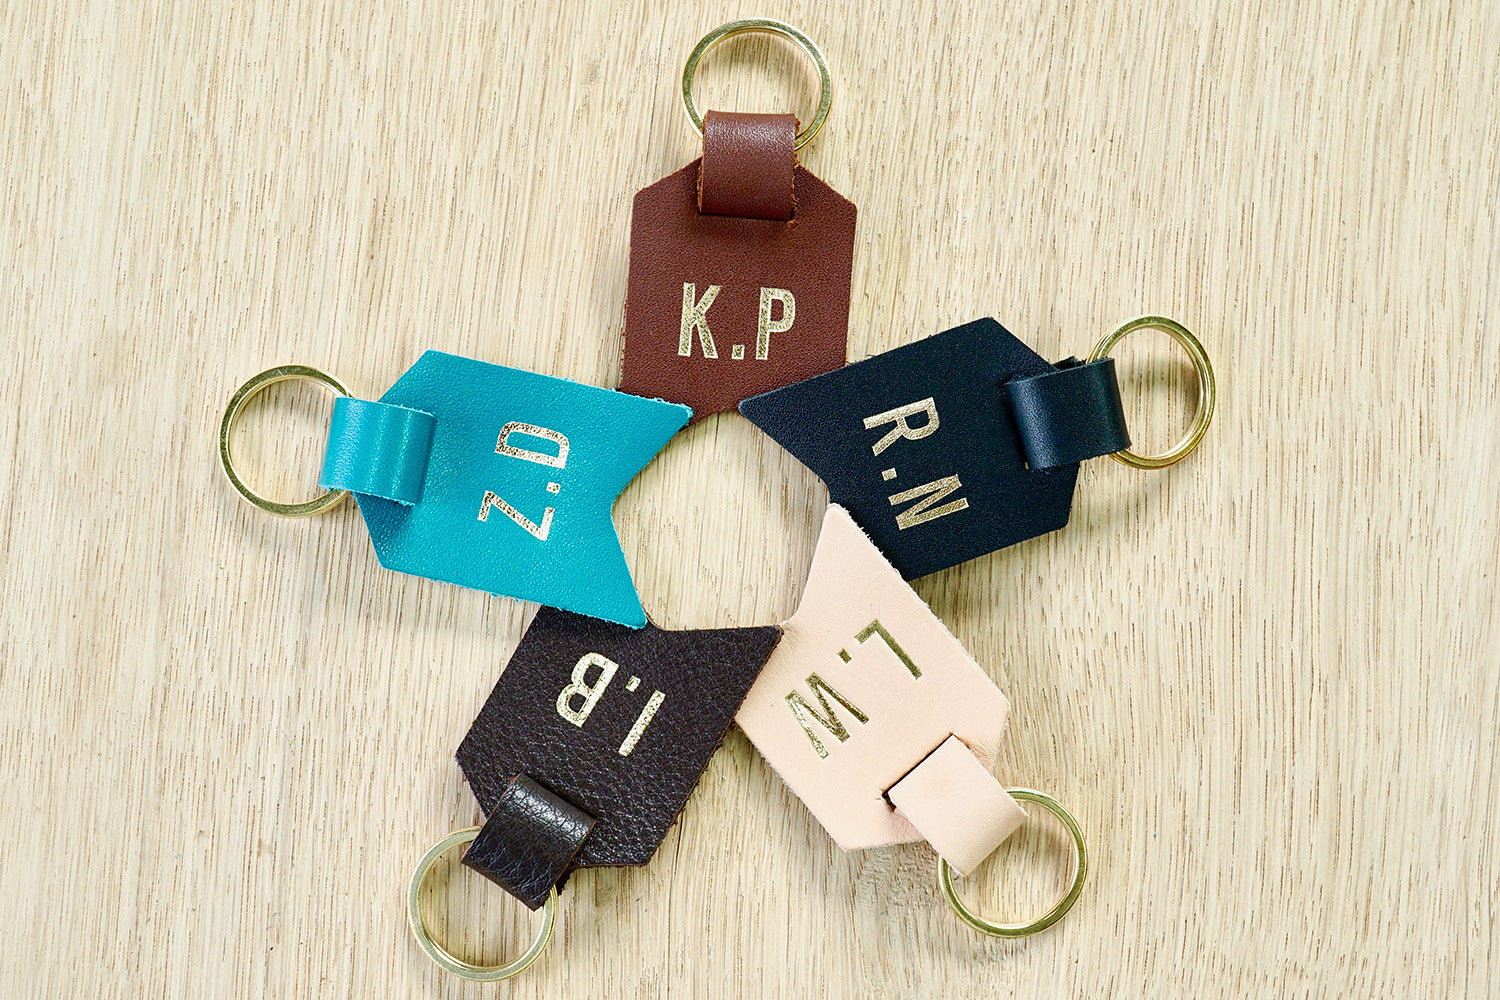 Couple keychain from Bookshell Bindery available in black leather, turquoise blue leather, dark brown leather, light brown leather, Natural (pale pink)